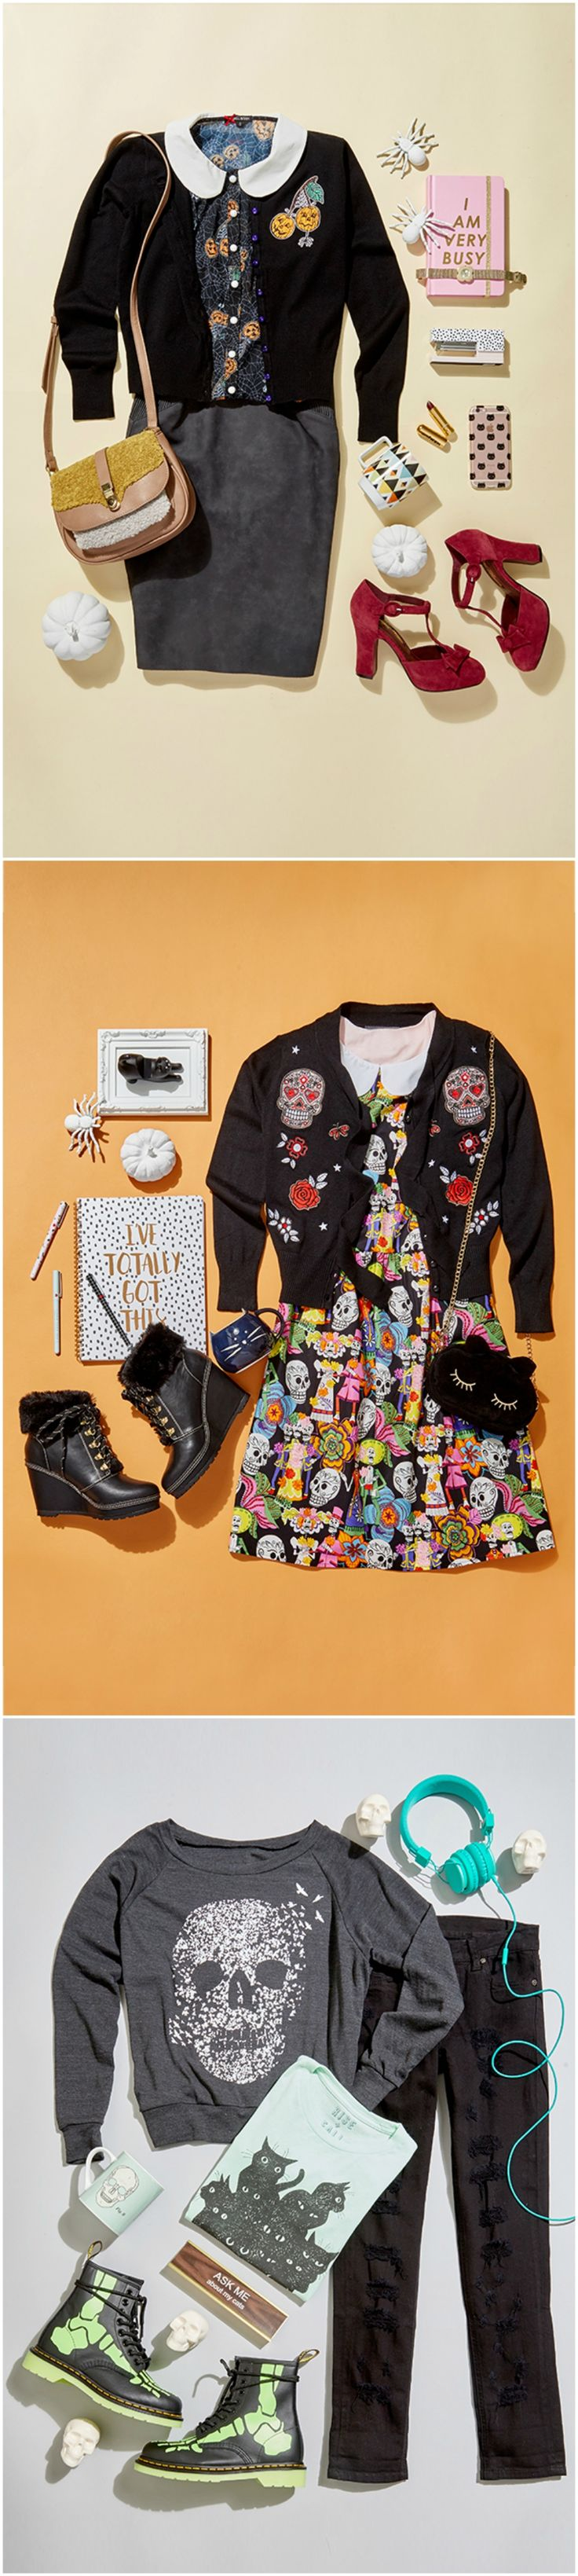 Stumped on what to wear to work on Halloween? We have a style guide for casual, corporate, and totally festive offices!